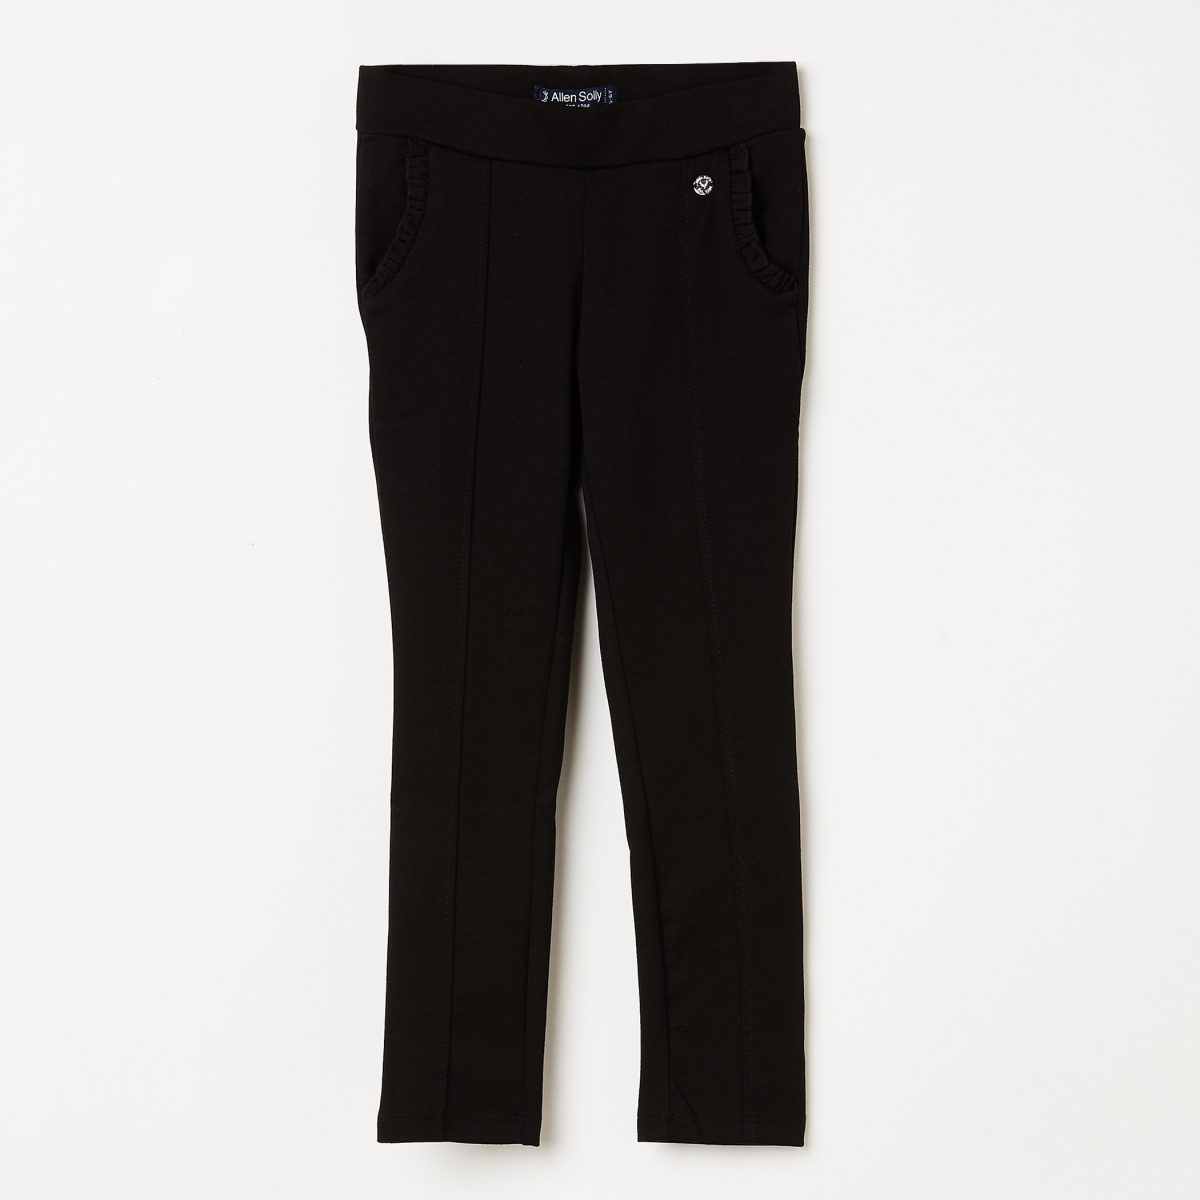 ALLEN SOLLY Solid Knitted Treggings